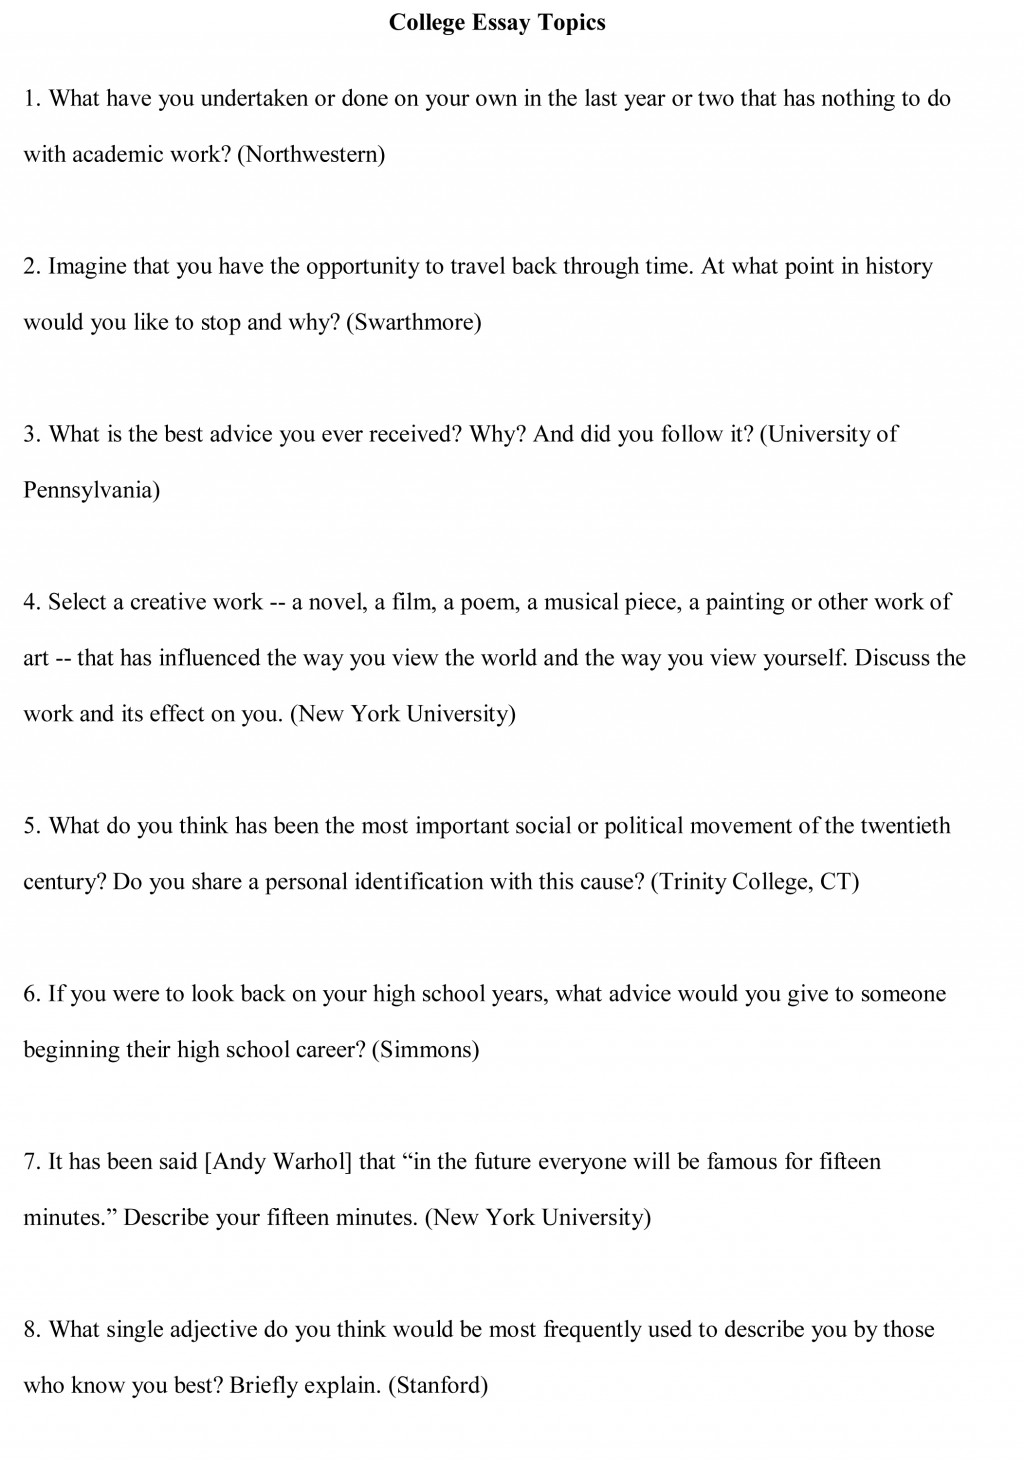 014 Essay Topics College Free Sample1 Archaicawful List For High School Students Freshman Large